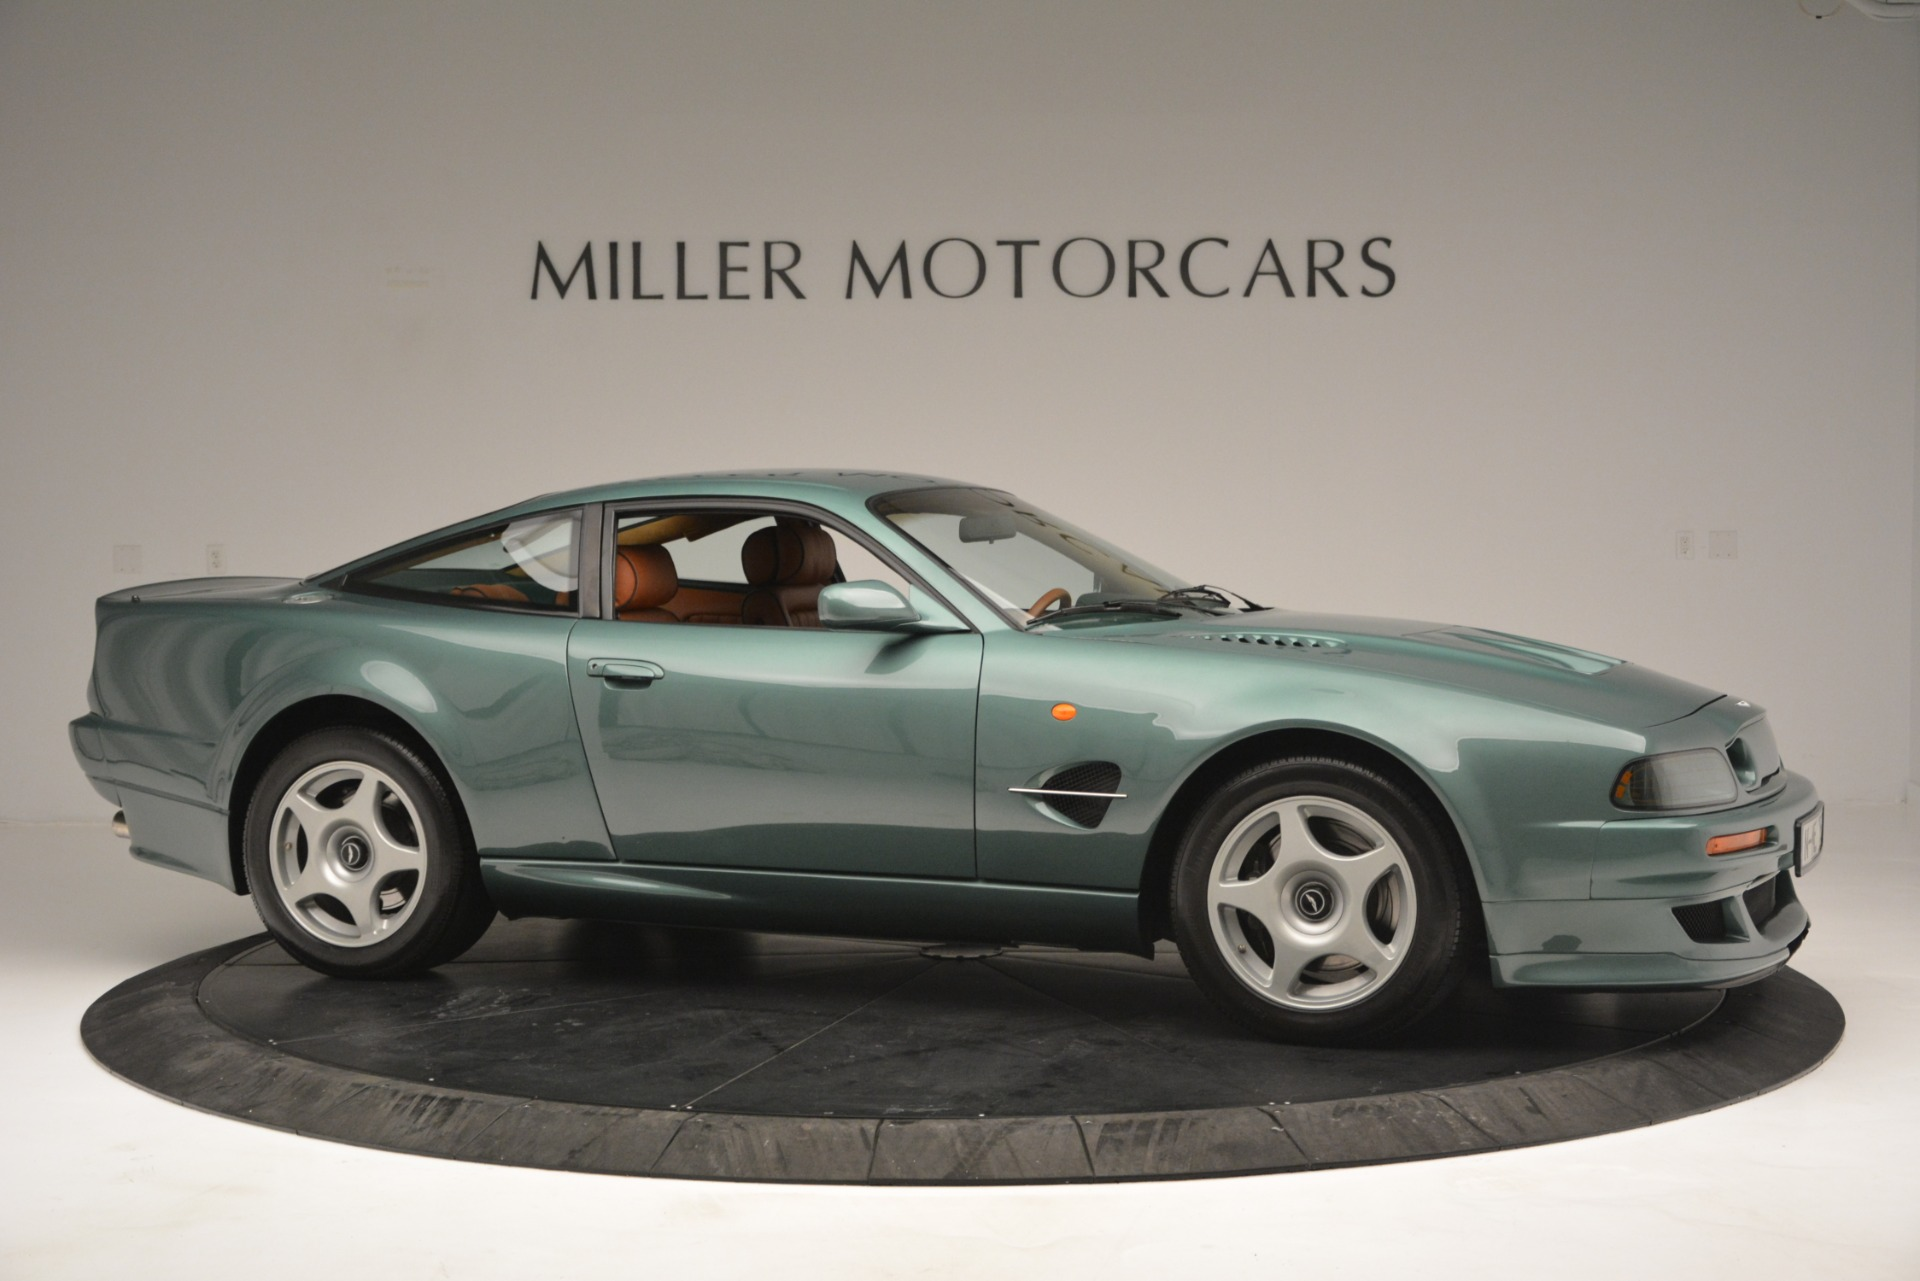 Used 1999 Aston Martin V8 Vantage Le Mans V600 Coupe For Sale In Westport, CT 2789_p11